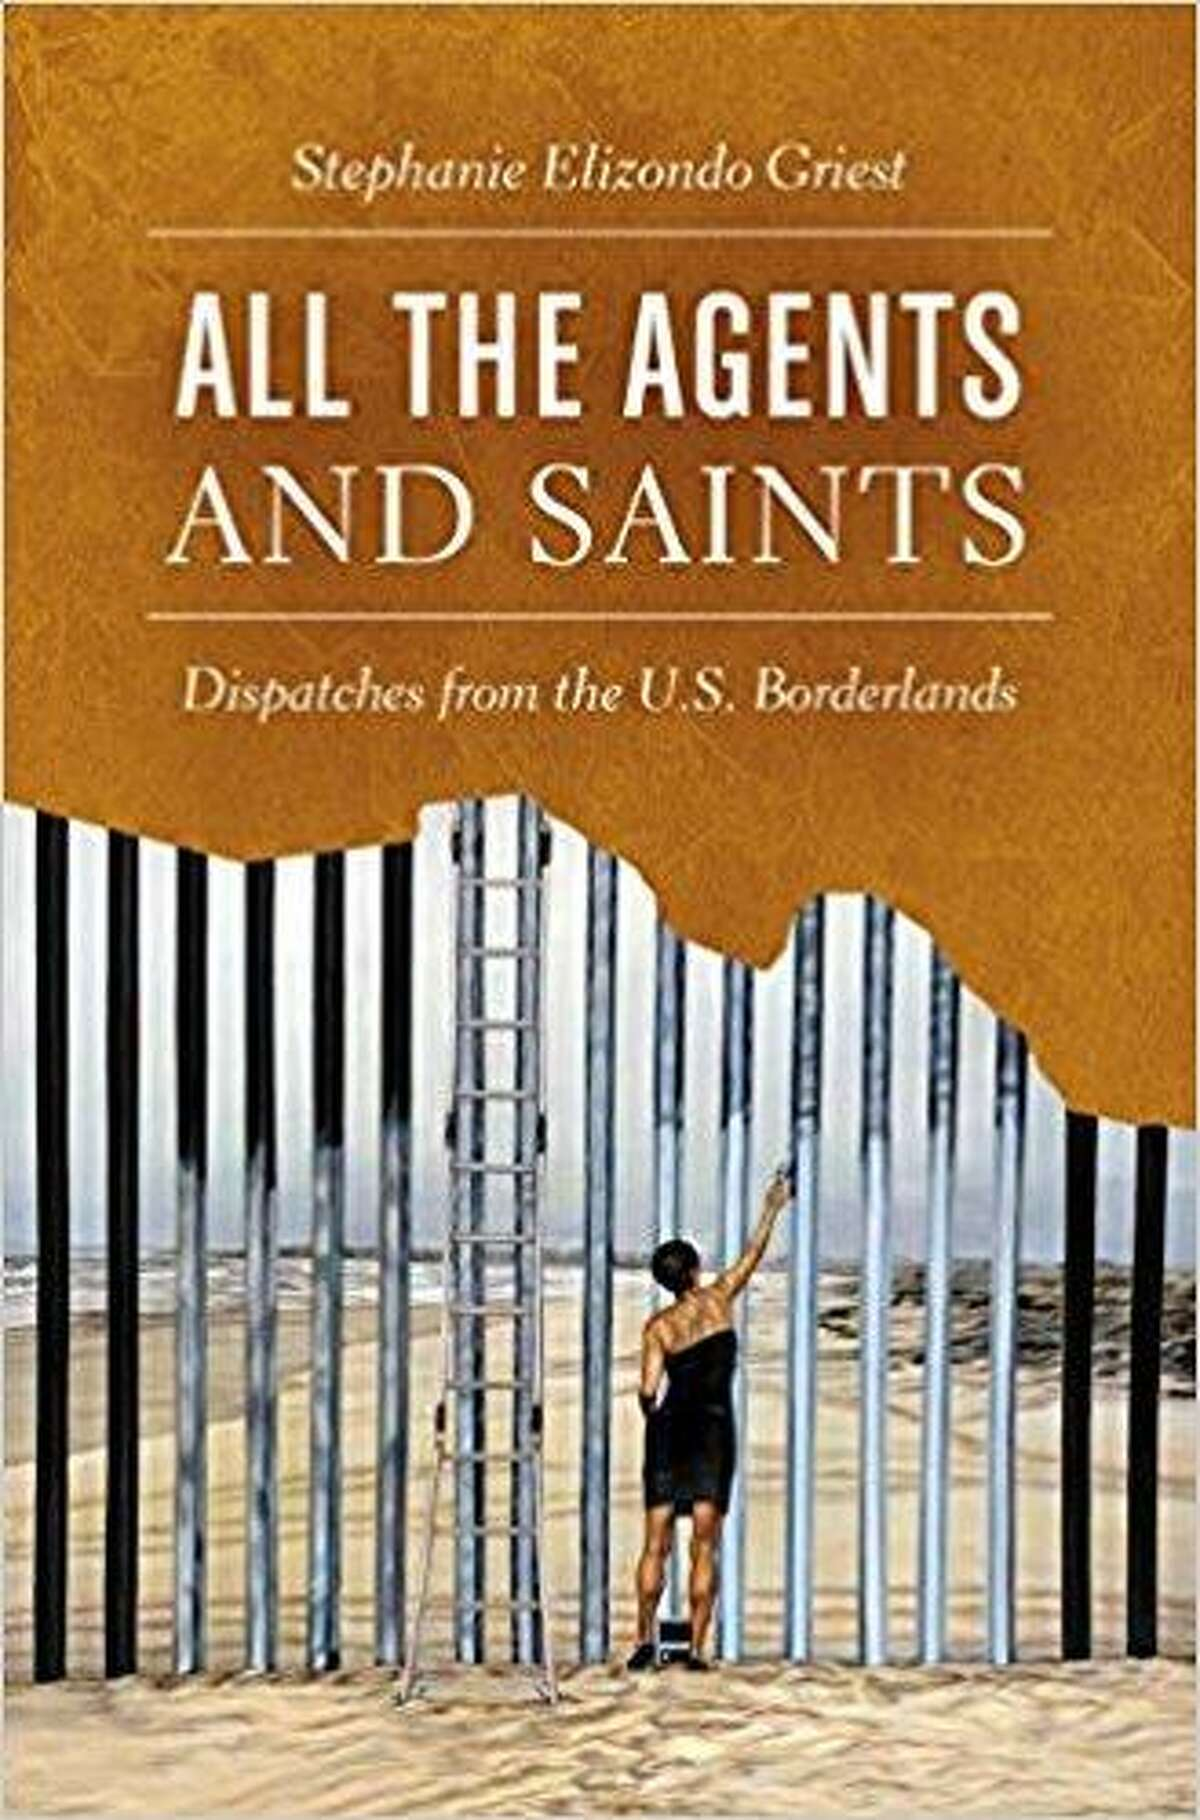 """""""All the Agents and Saints: Dispatches from the U.S. Borderlands"""" by Stephanie Elizondo Griest"""